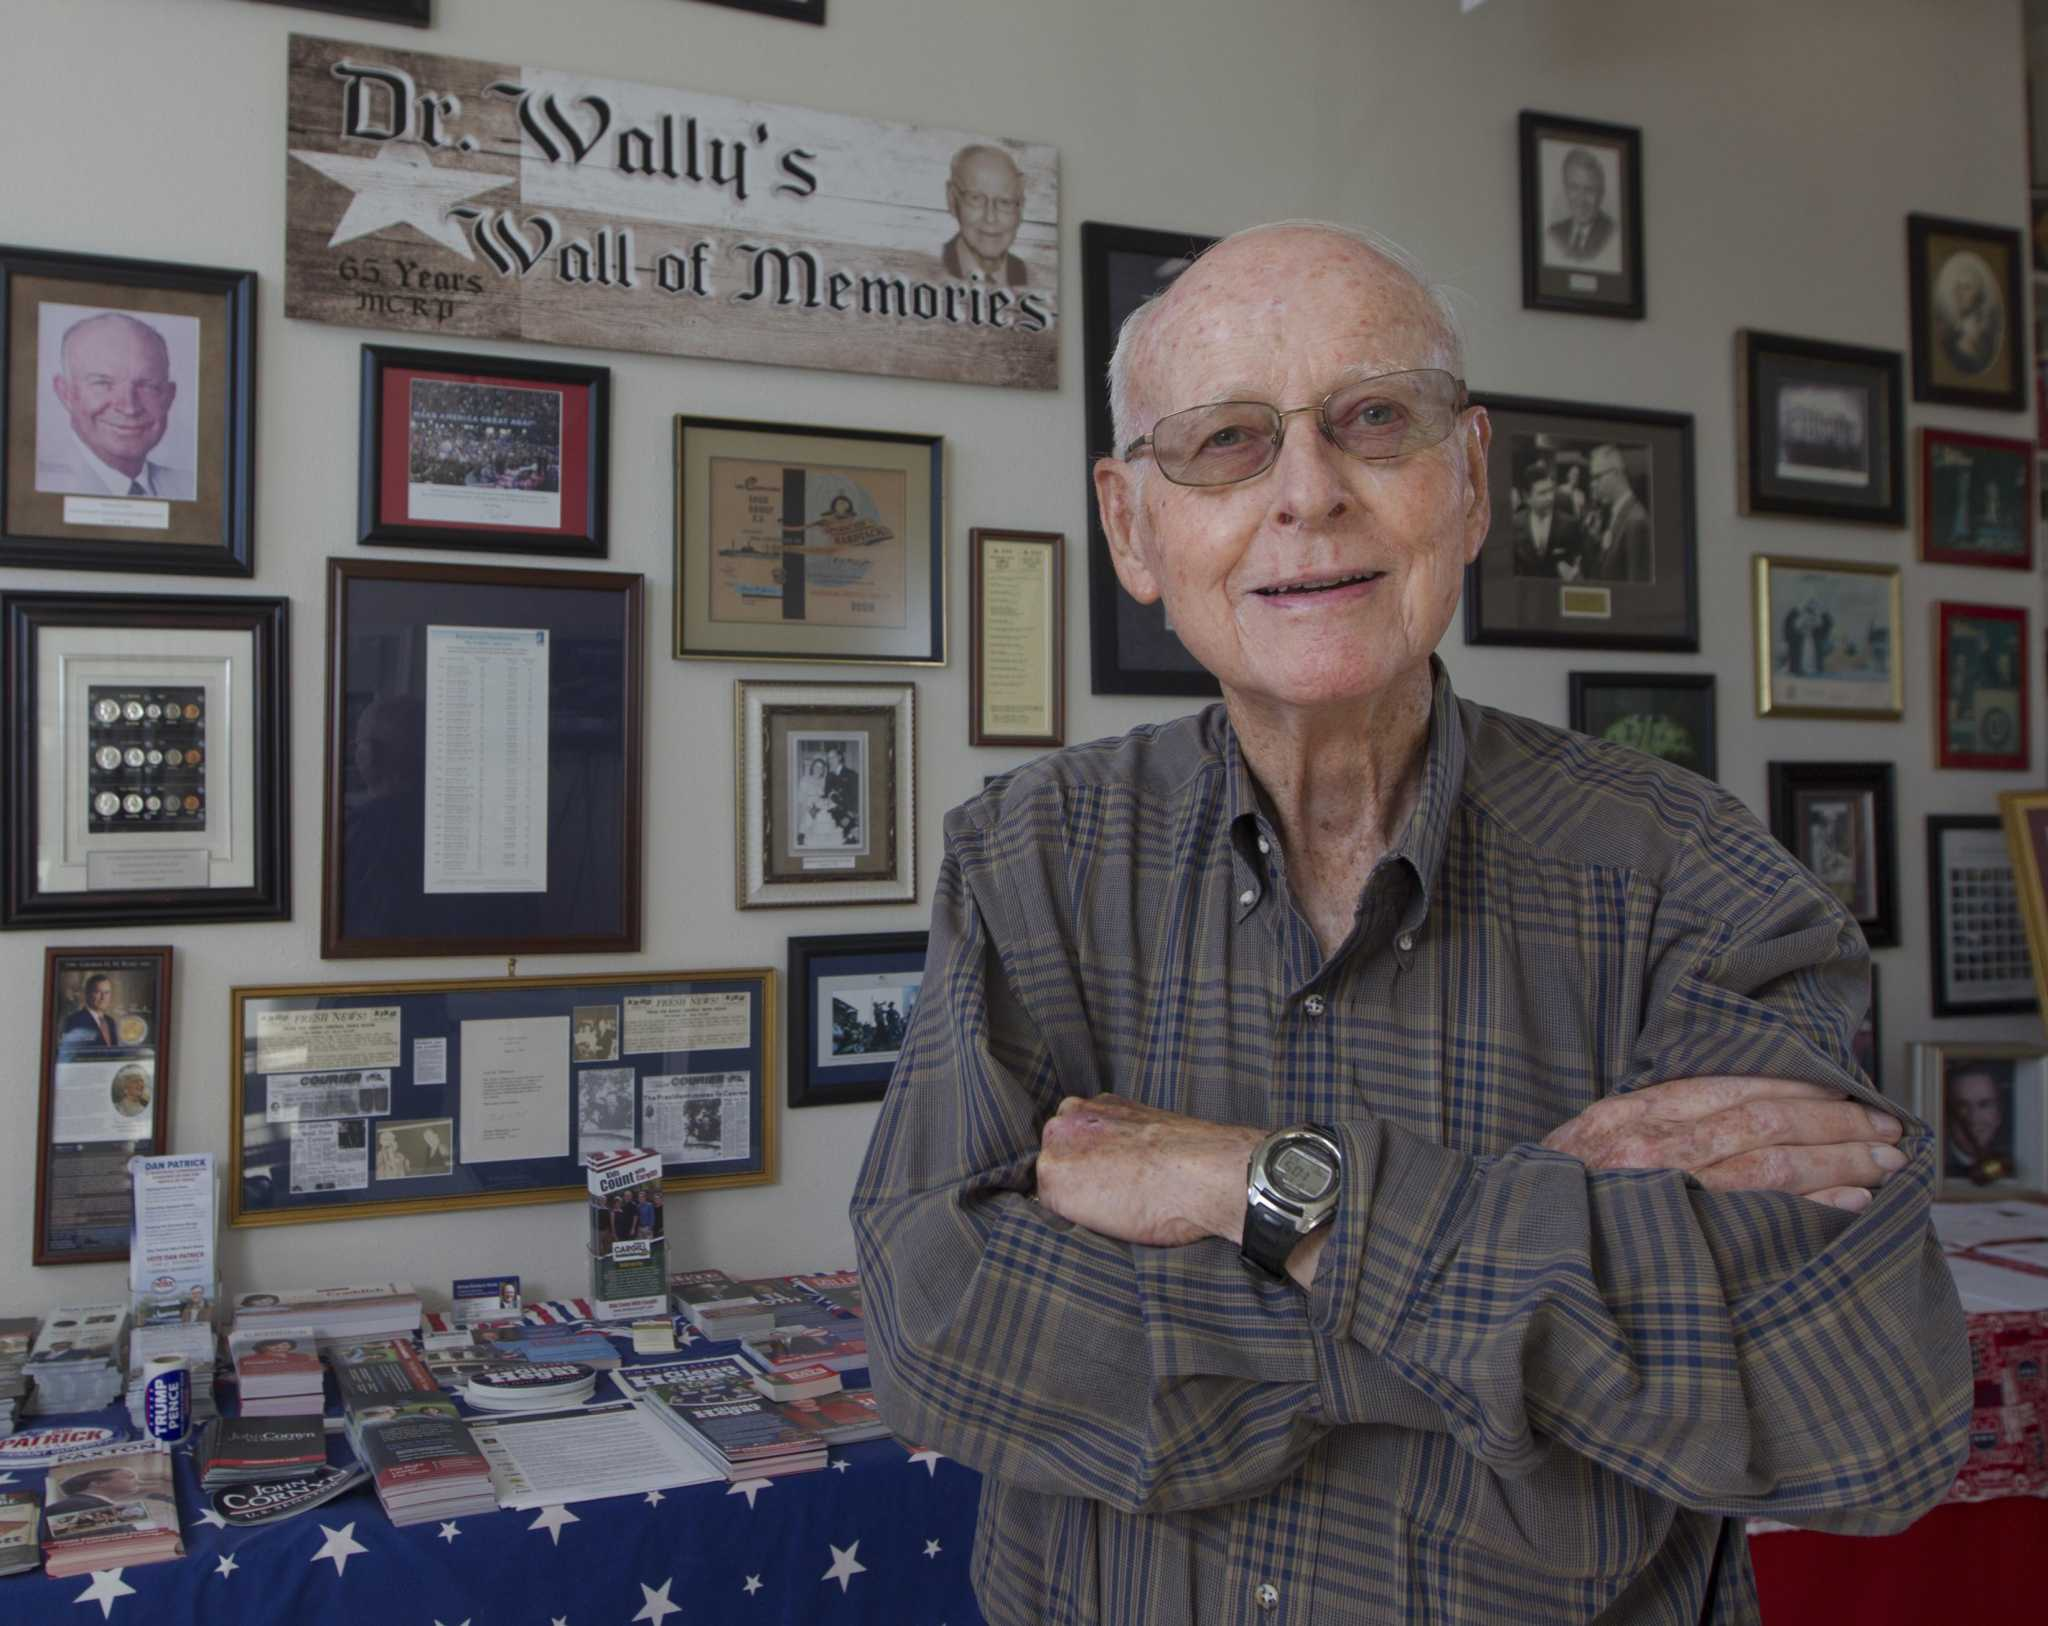 Opinion: After 56 years, GOP's departing chair 'Dr. Wally' recalls when Montgomery County couldn't spell Republican